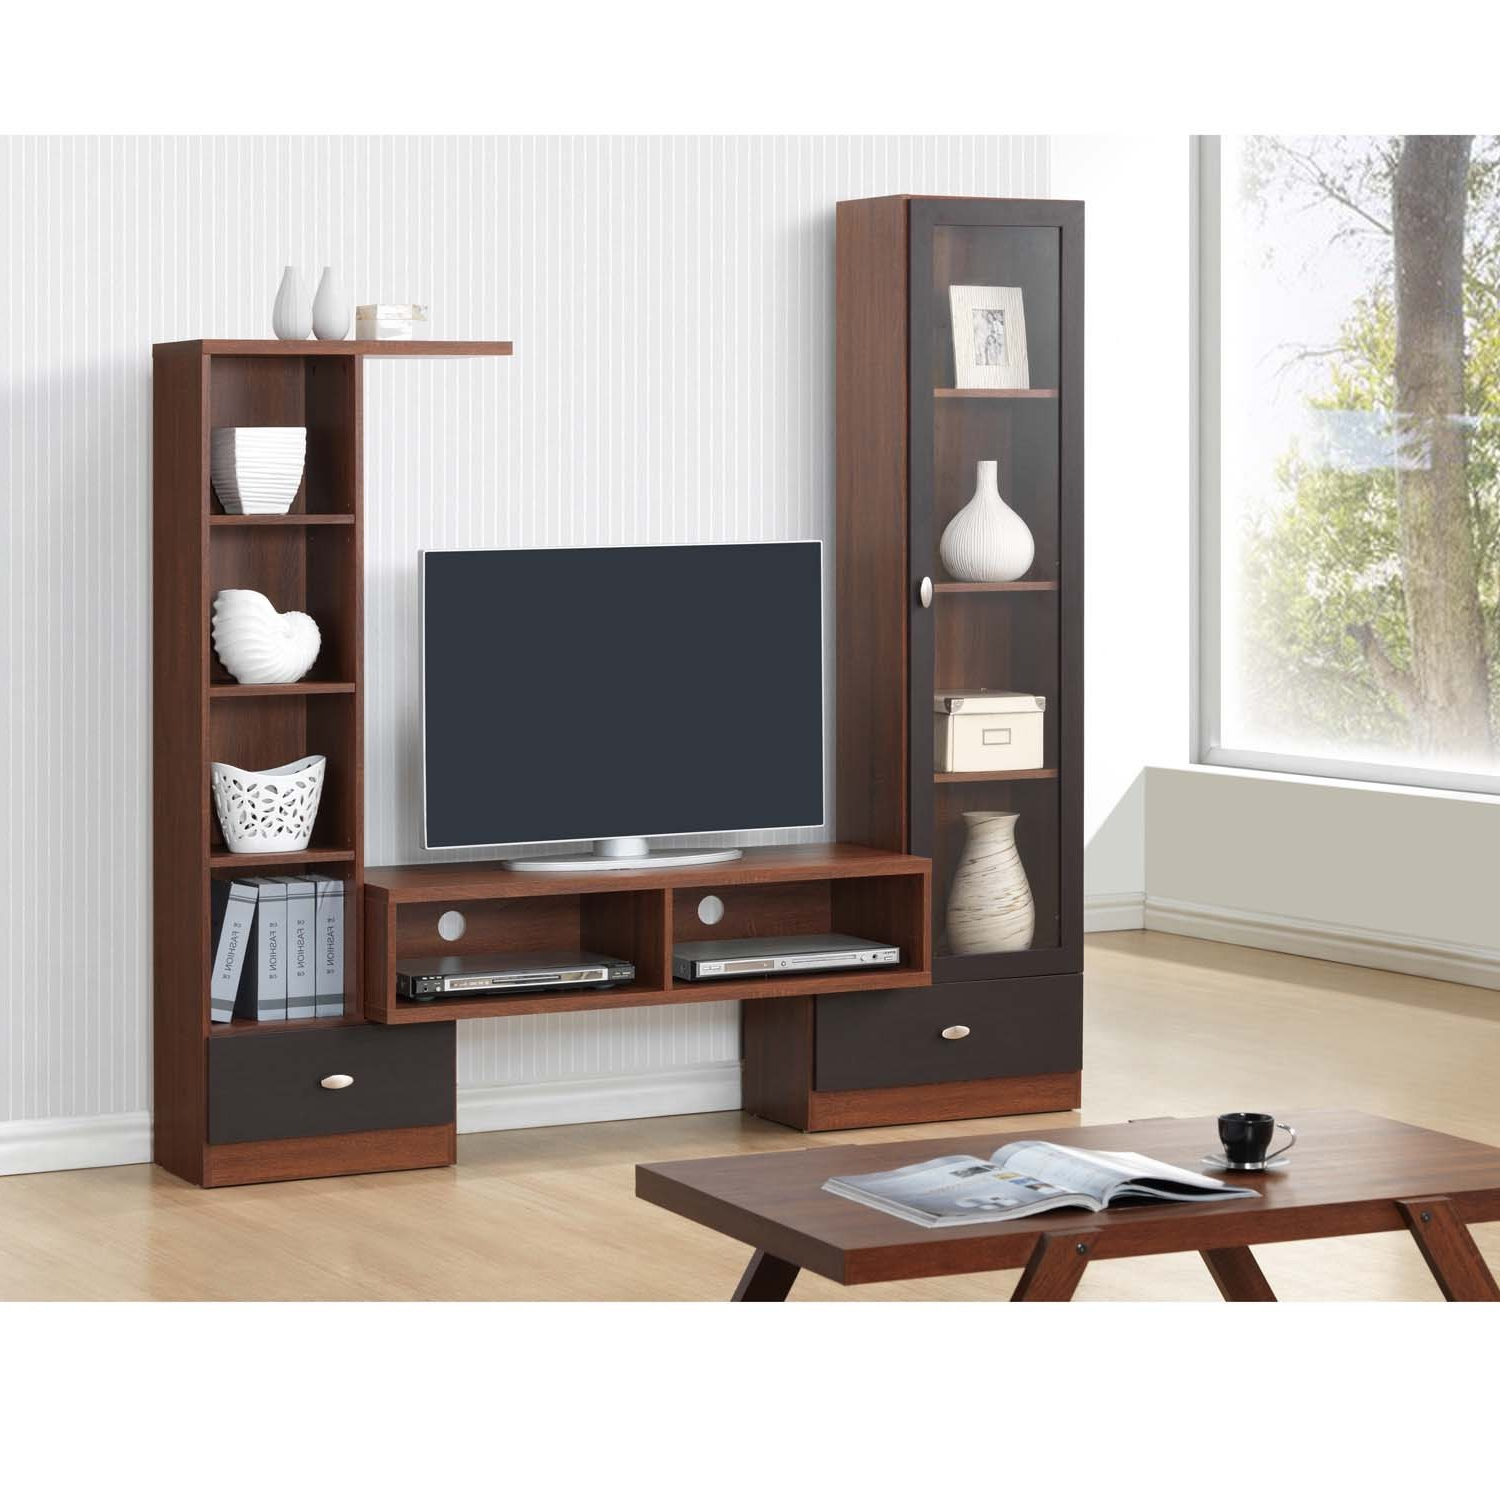 Shop Baxton Studio Empire Sonoma Oak Finishing Modern Tv Stand Inside 2018 Modern Wooden Tv Stands (View 14 of 20)